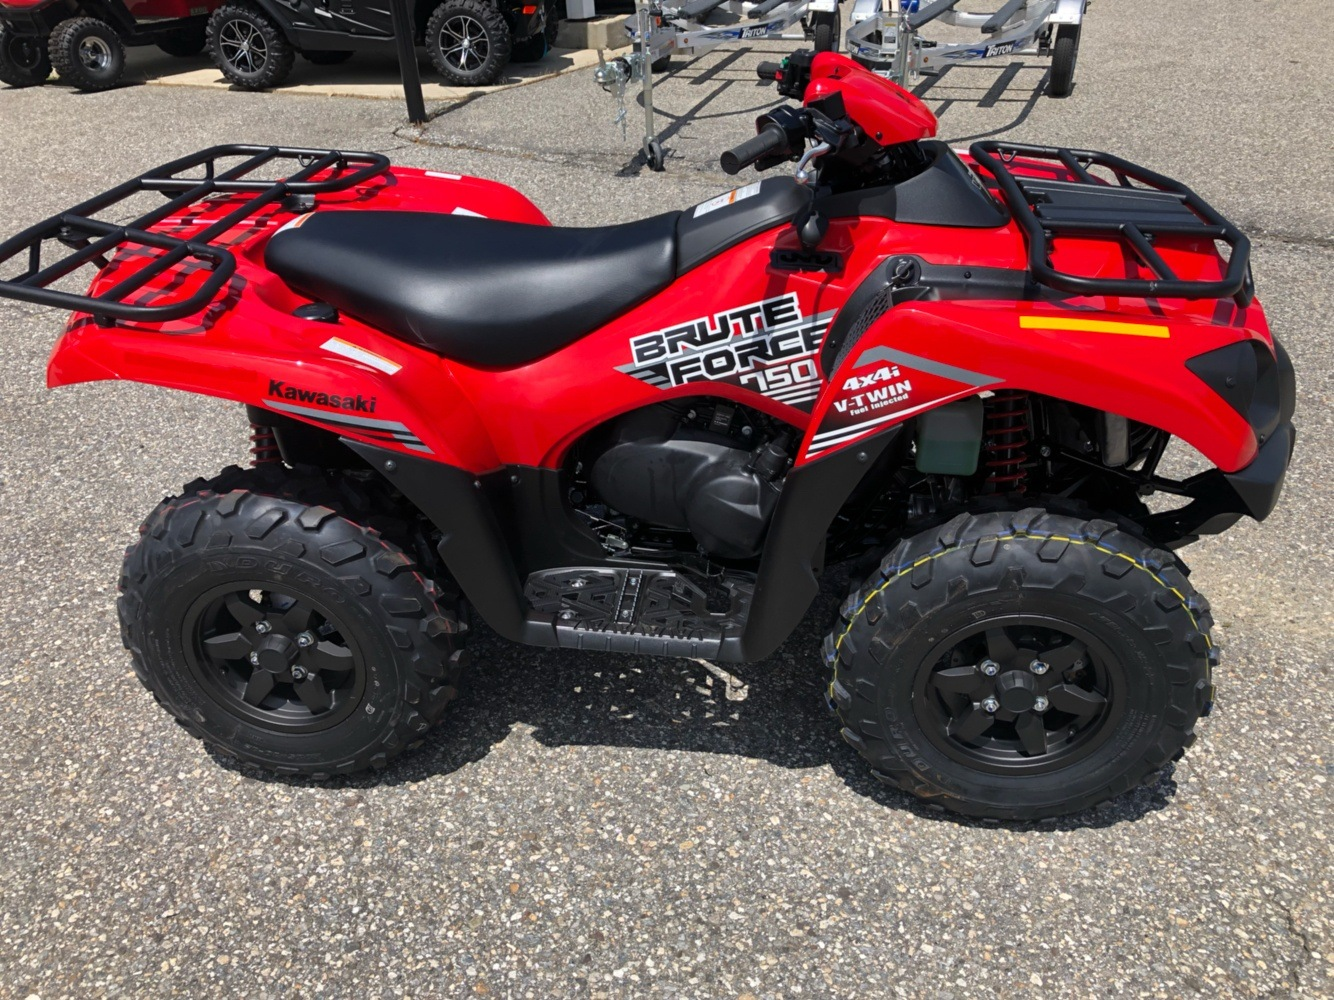 2020 Kawasaki Brute Force 750 4x4i in Lebanon, Maine - Photo 3